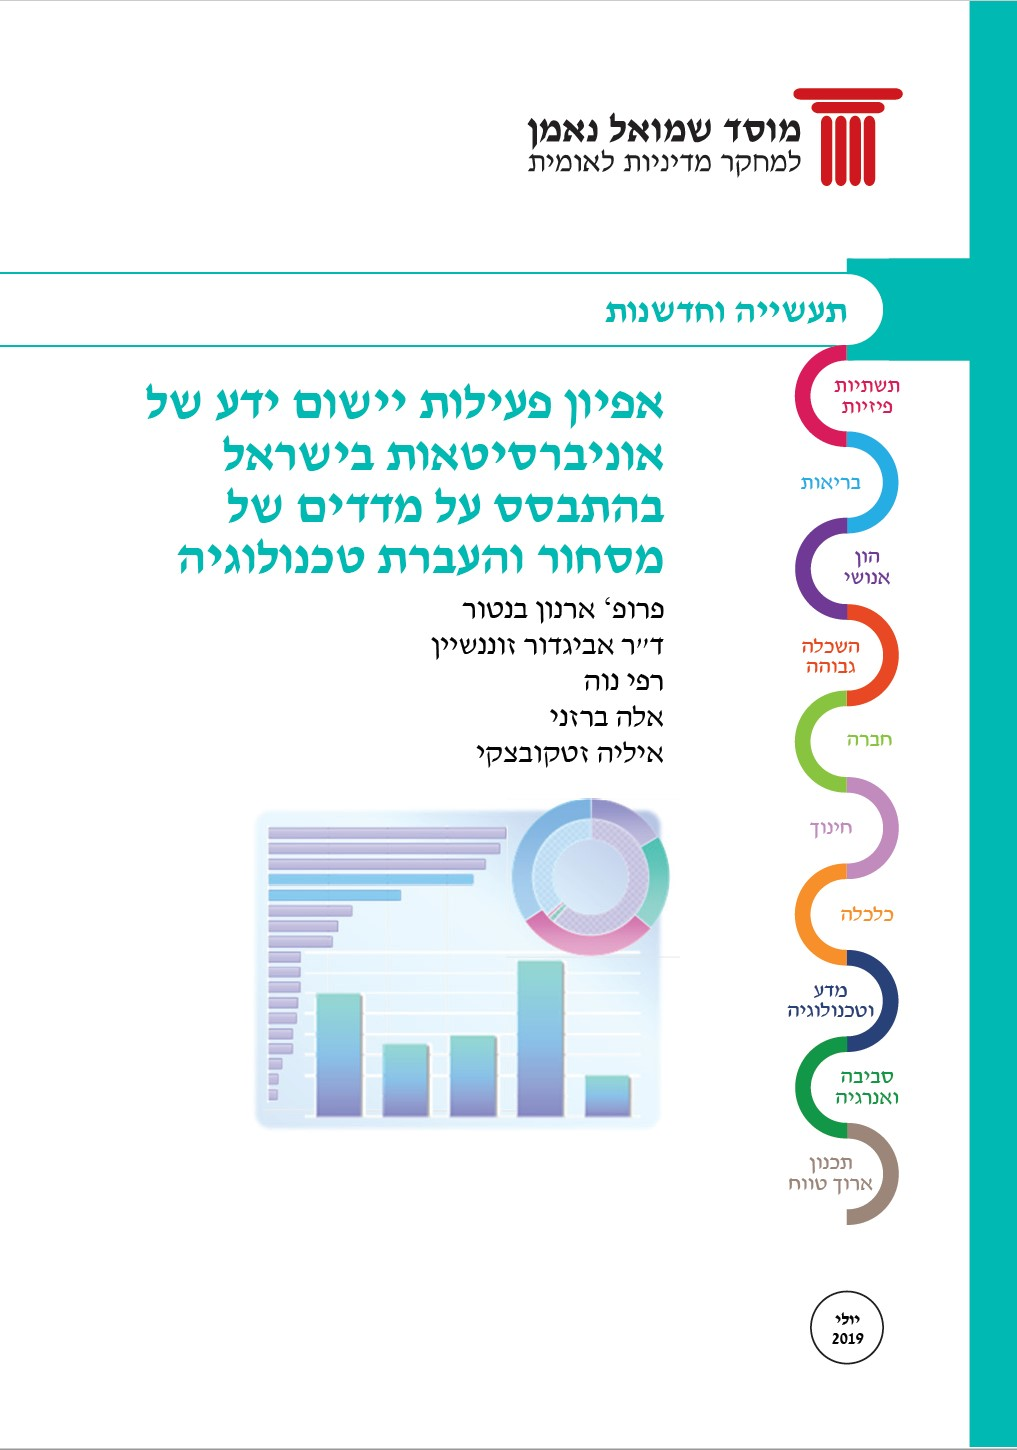 Characterization of knowledge transfer of Israeli universities based on indices of commercialization and technology transfer